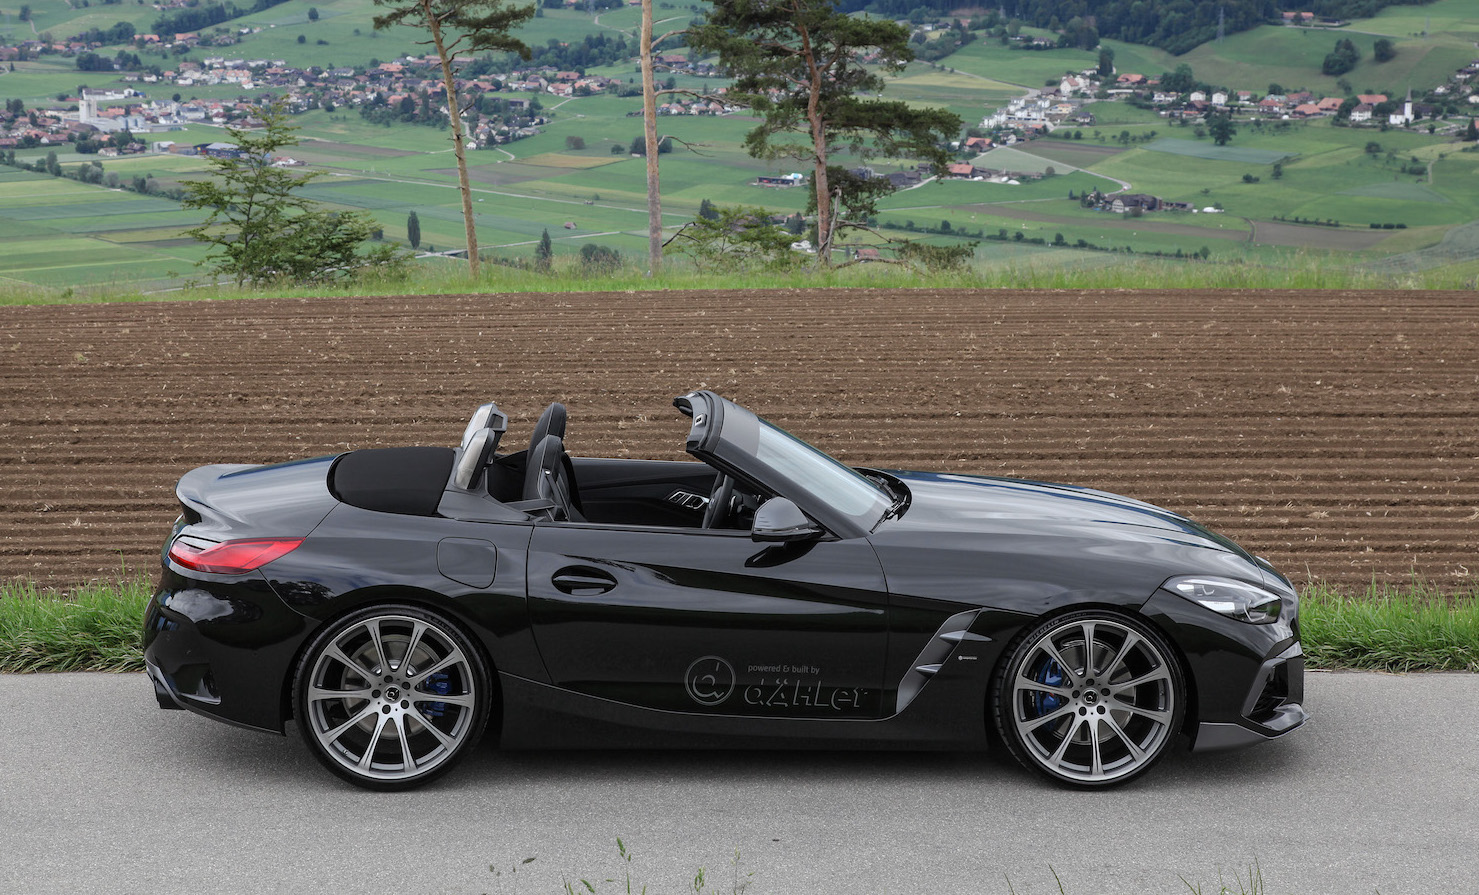 D 228 Hler Bmw Z4 M40i Tuning Package Gives Roadster M Like